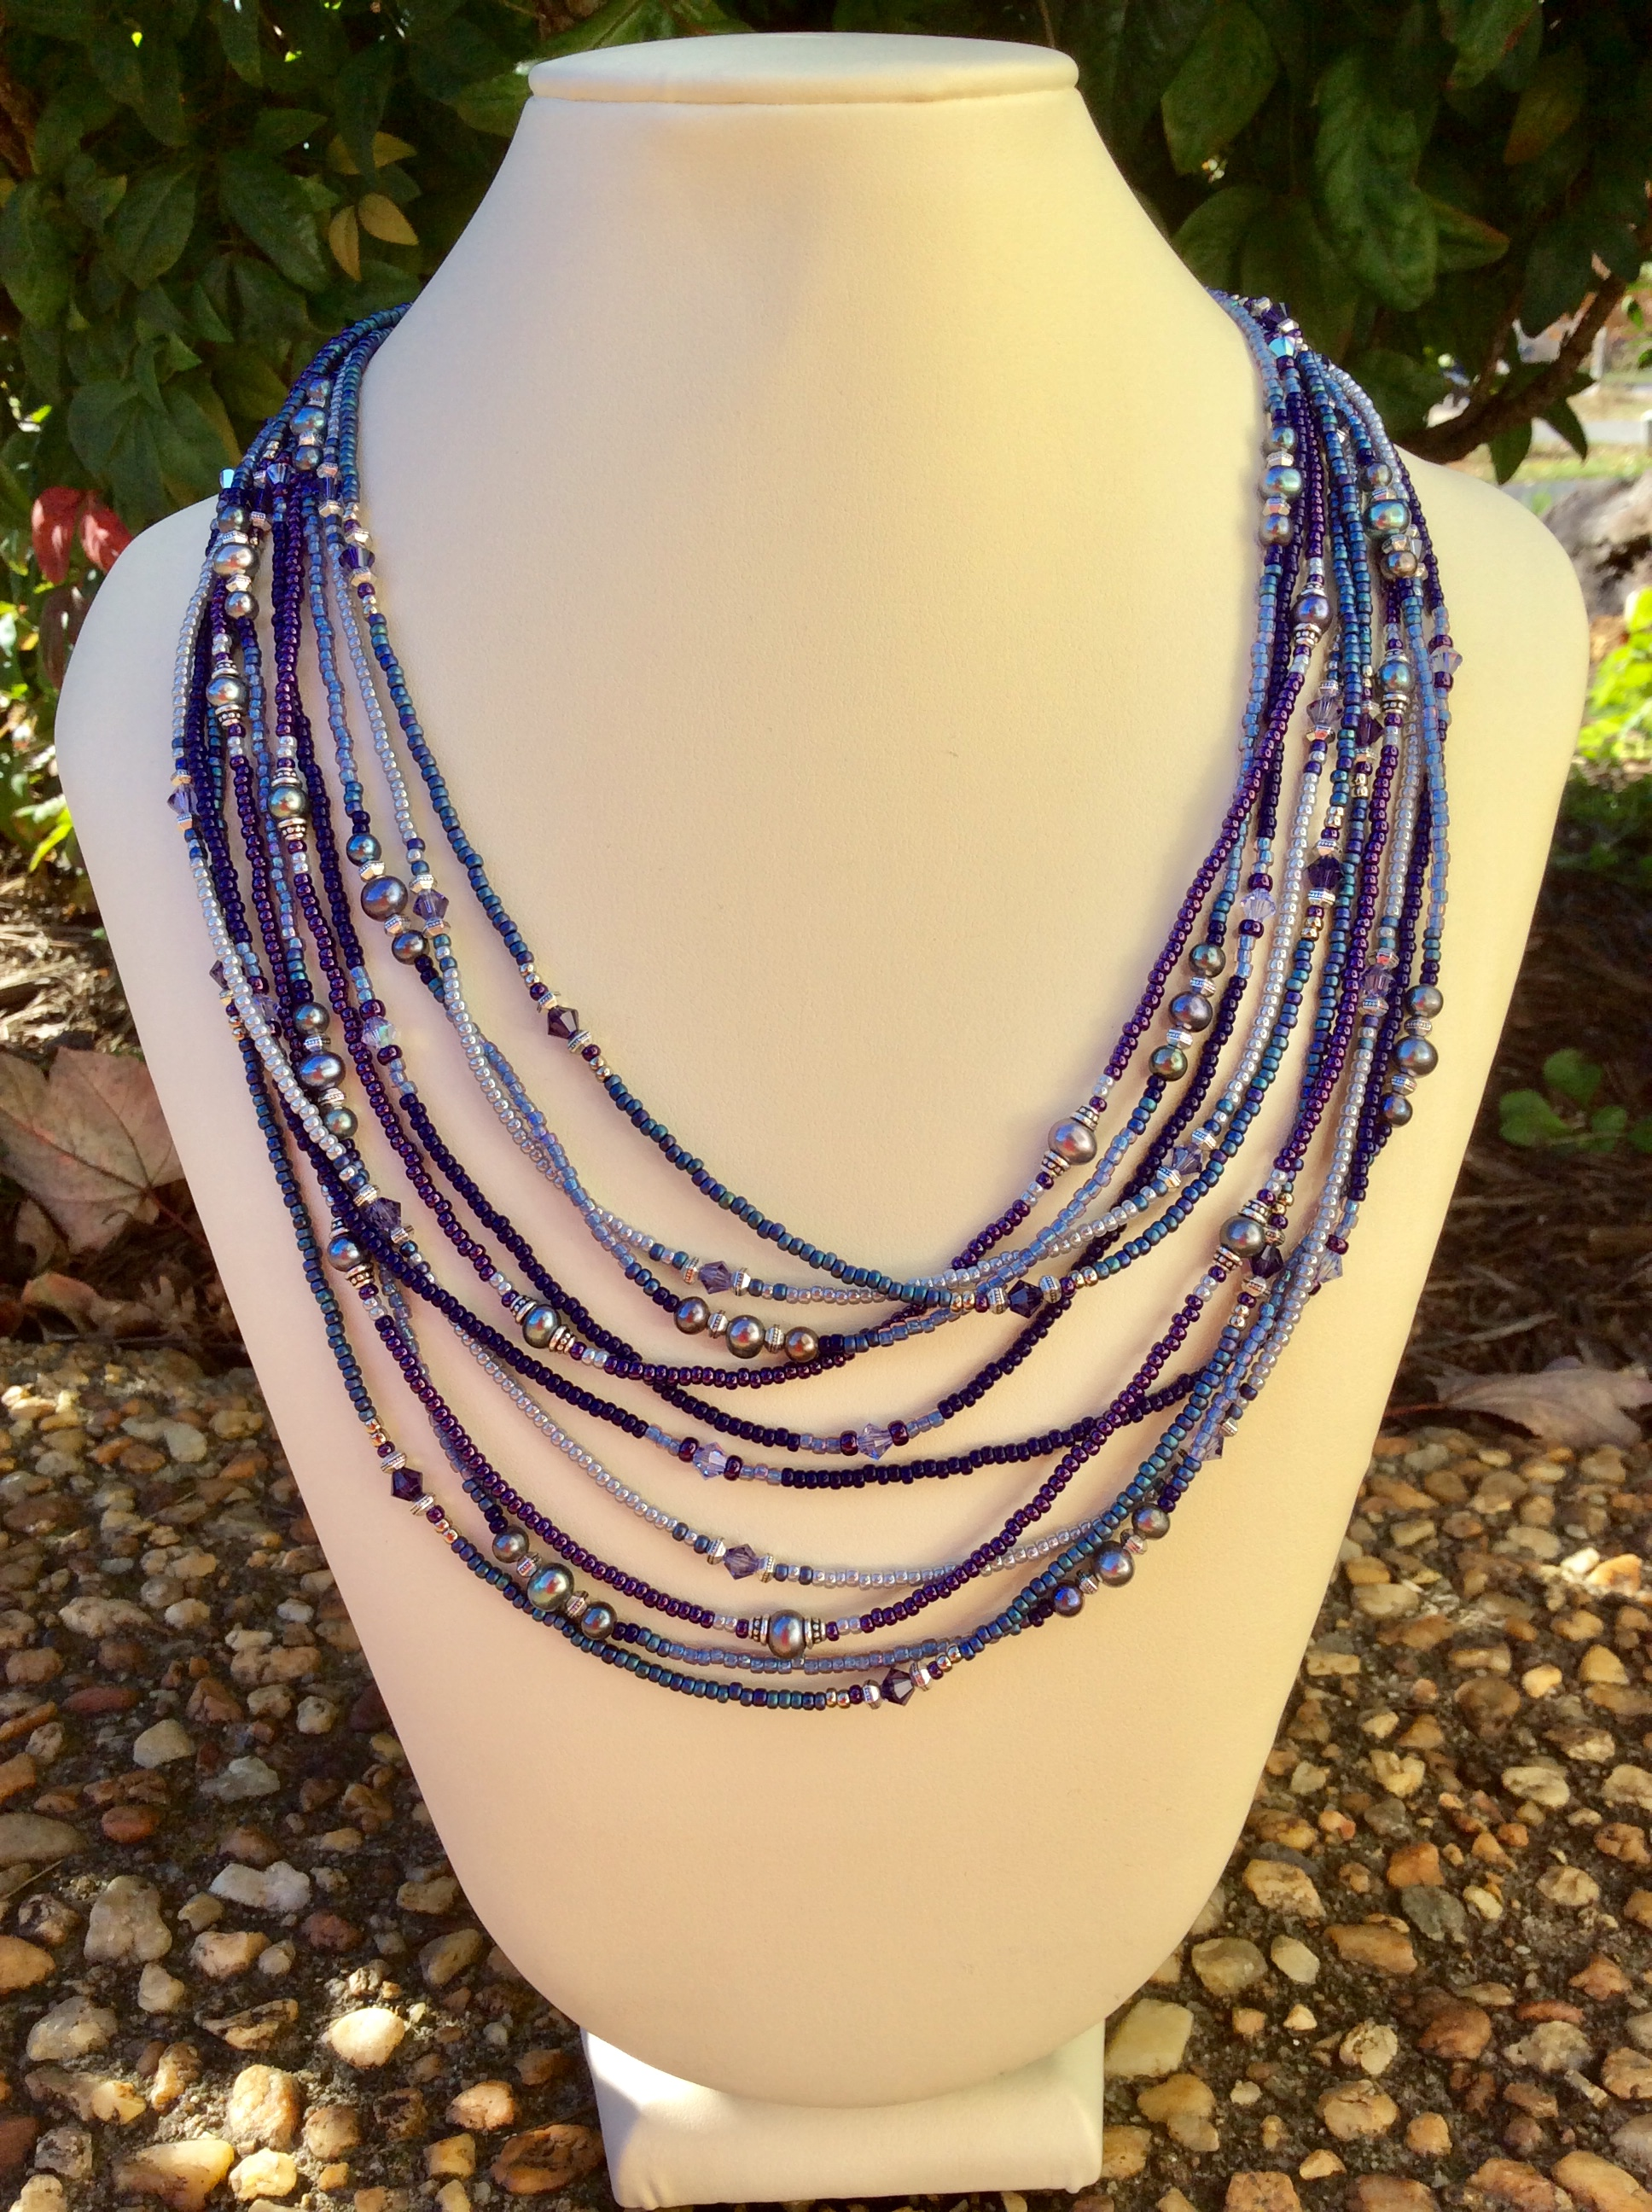 Rae Design Blue-Purples 5 Strand Necklace